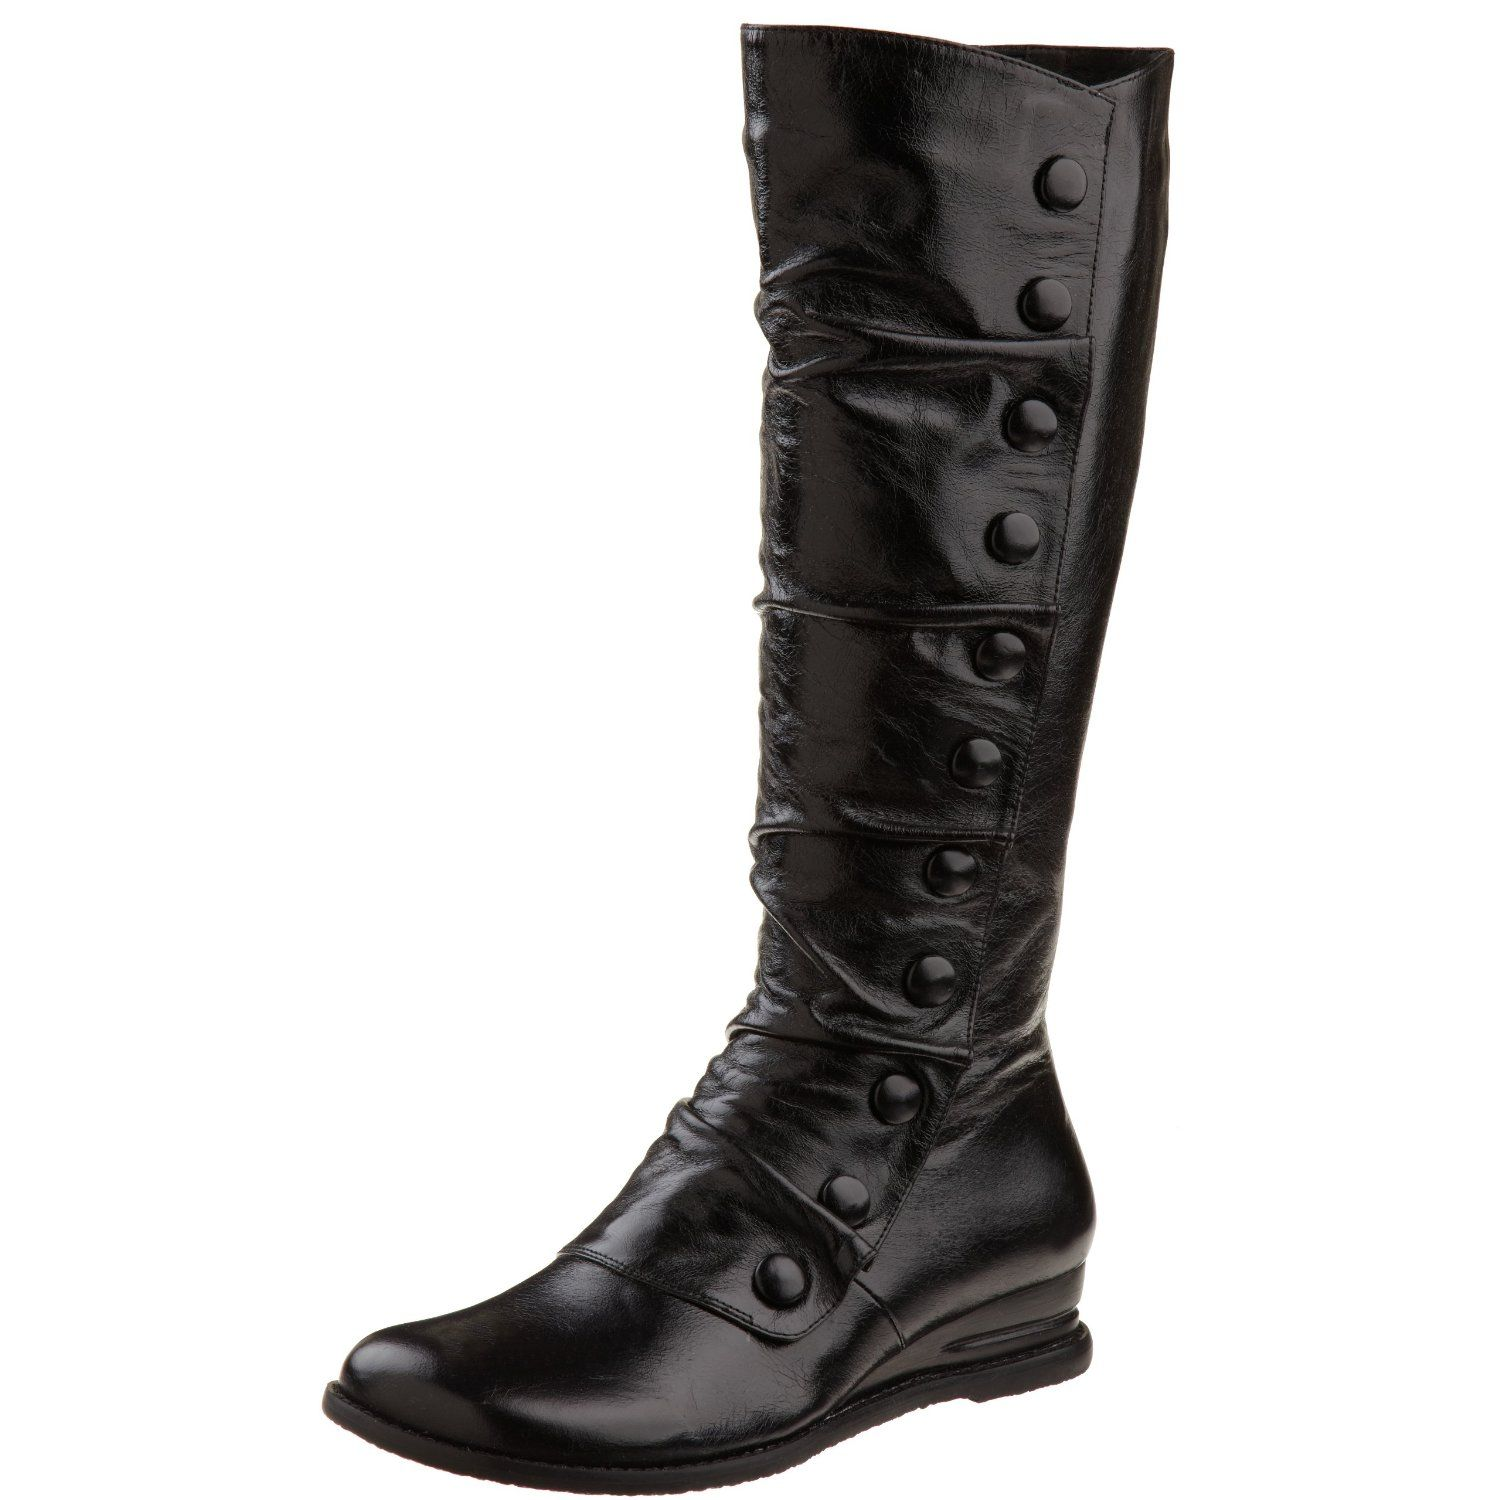 Shop Women's Miz Mooz Boots on Lyst. Track over 662 Miz Mooz Boots for  stock and sale updates.